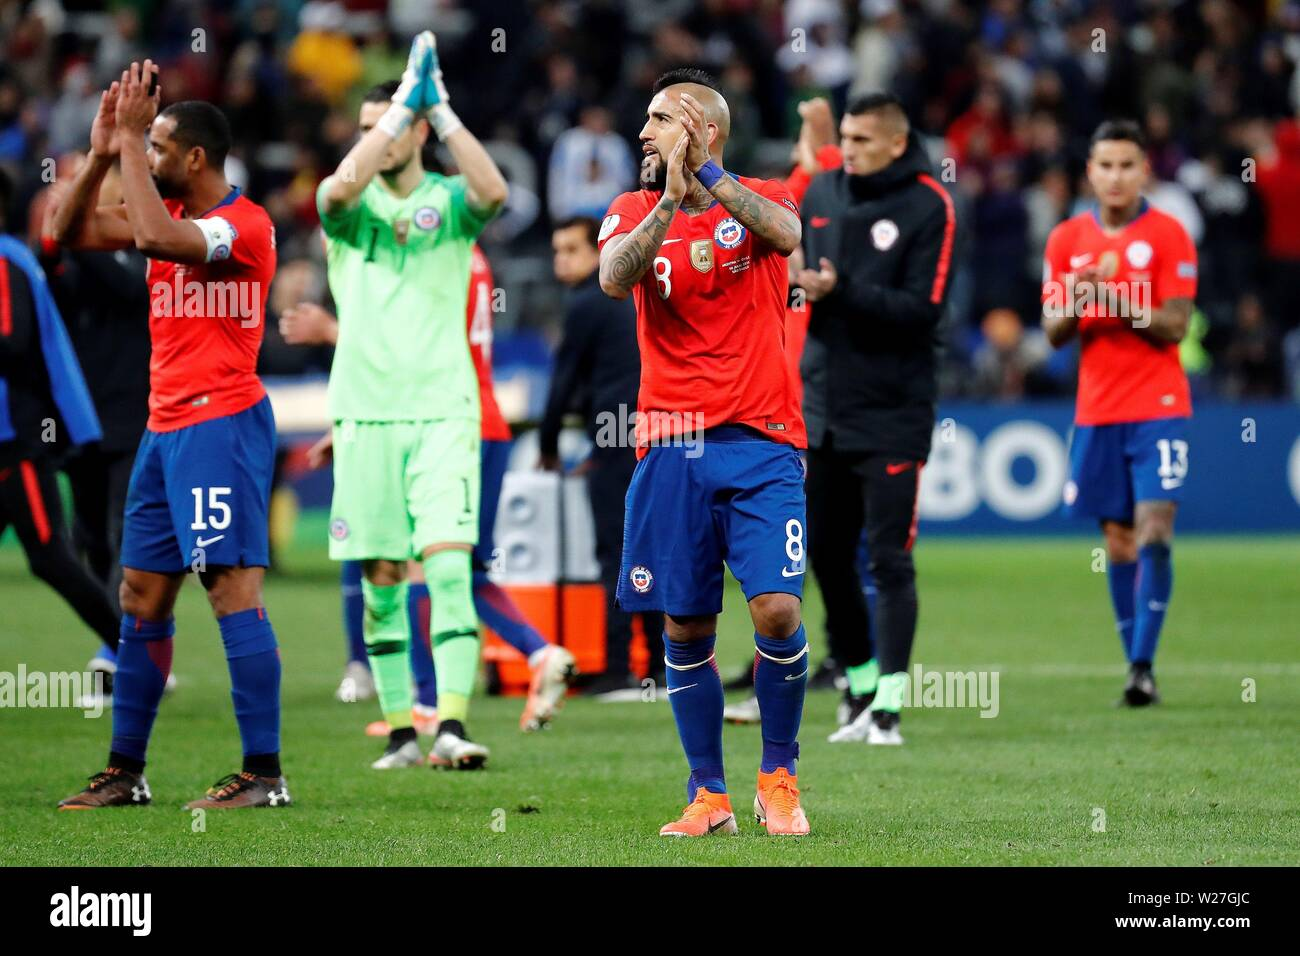 Sao Paulo, Brazil. 06th July, 2019. Chilean players react after being defeated the Copa America 2019 3rd place soccer match between Argentina and Chile, at Arena Corinthians Stadium in Sao Paulo, Brazil, 6 July 2019. Credit: Sebastiao Moreira/EFE/Alamy Live News - Stock Image